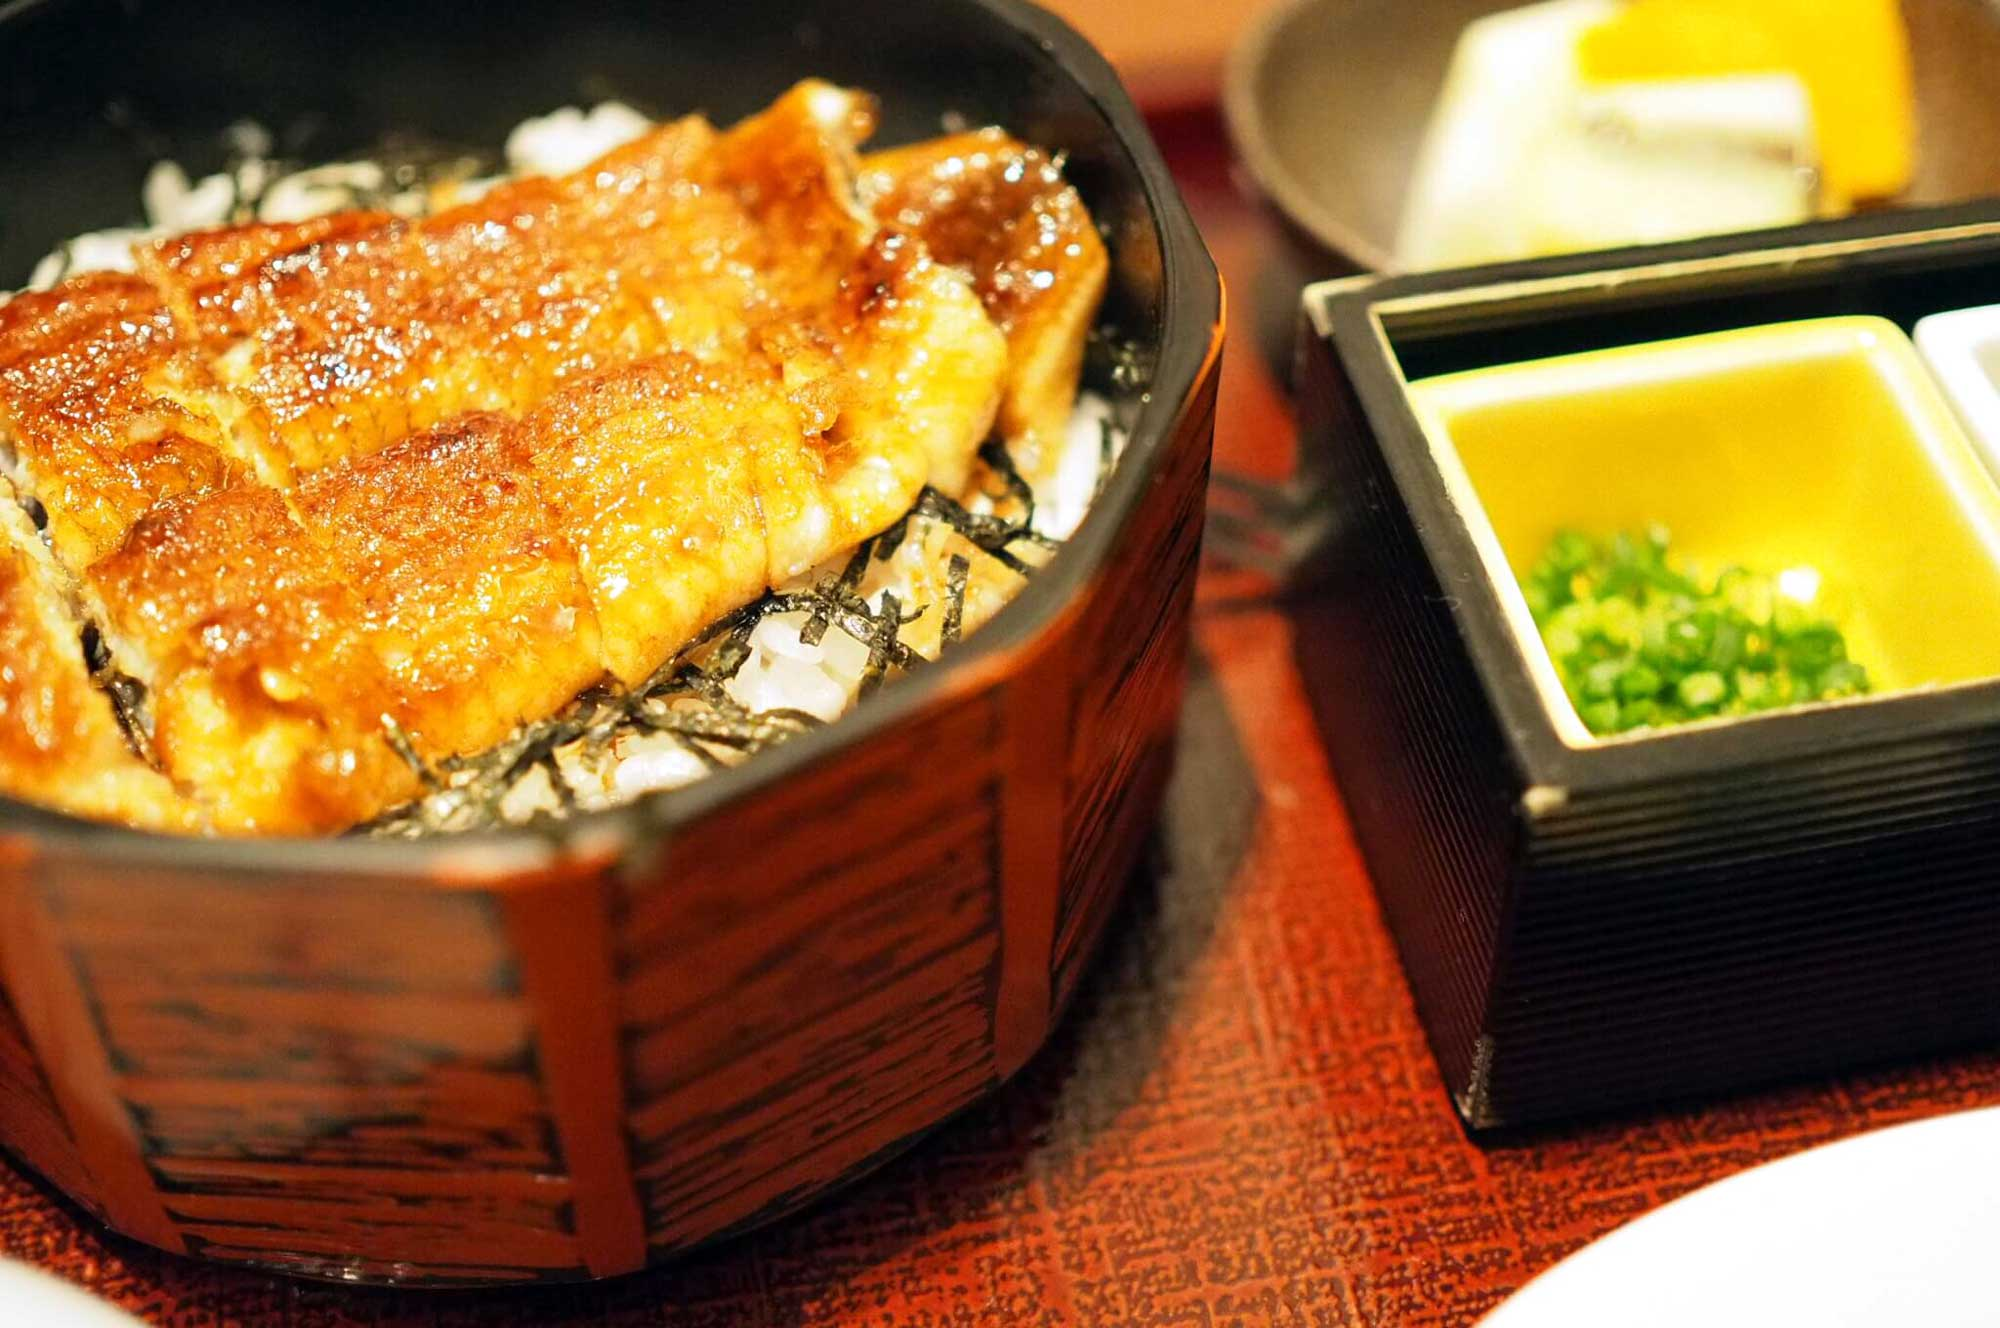 Hitsumabushi - Grilled Eel in a serving box